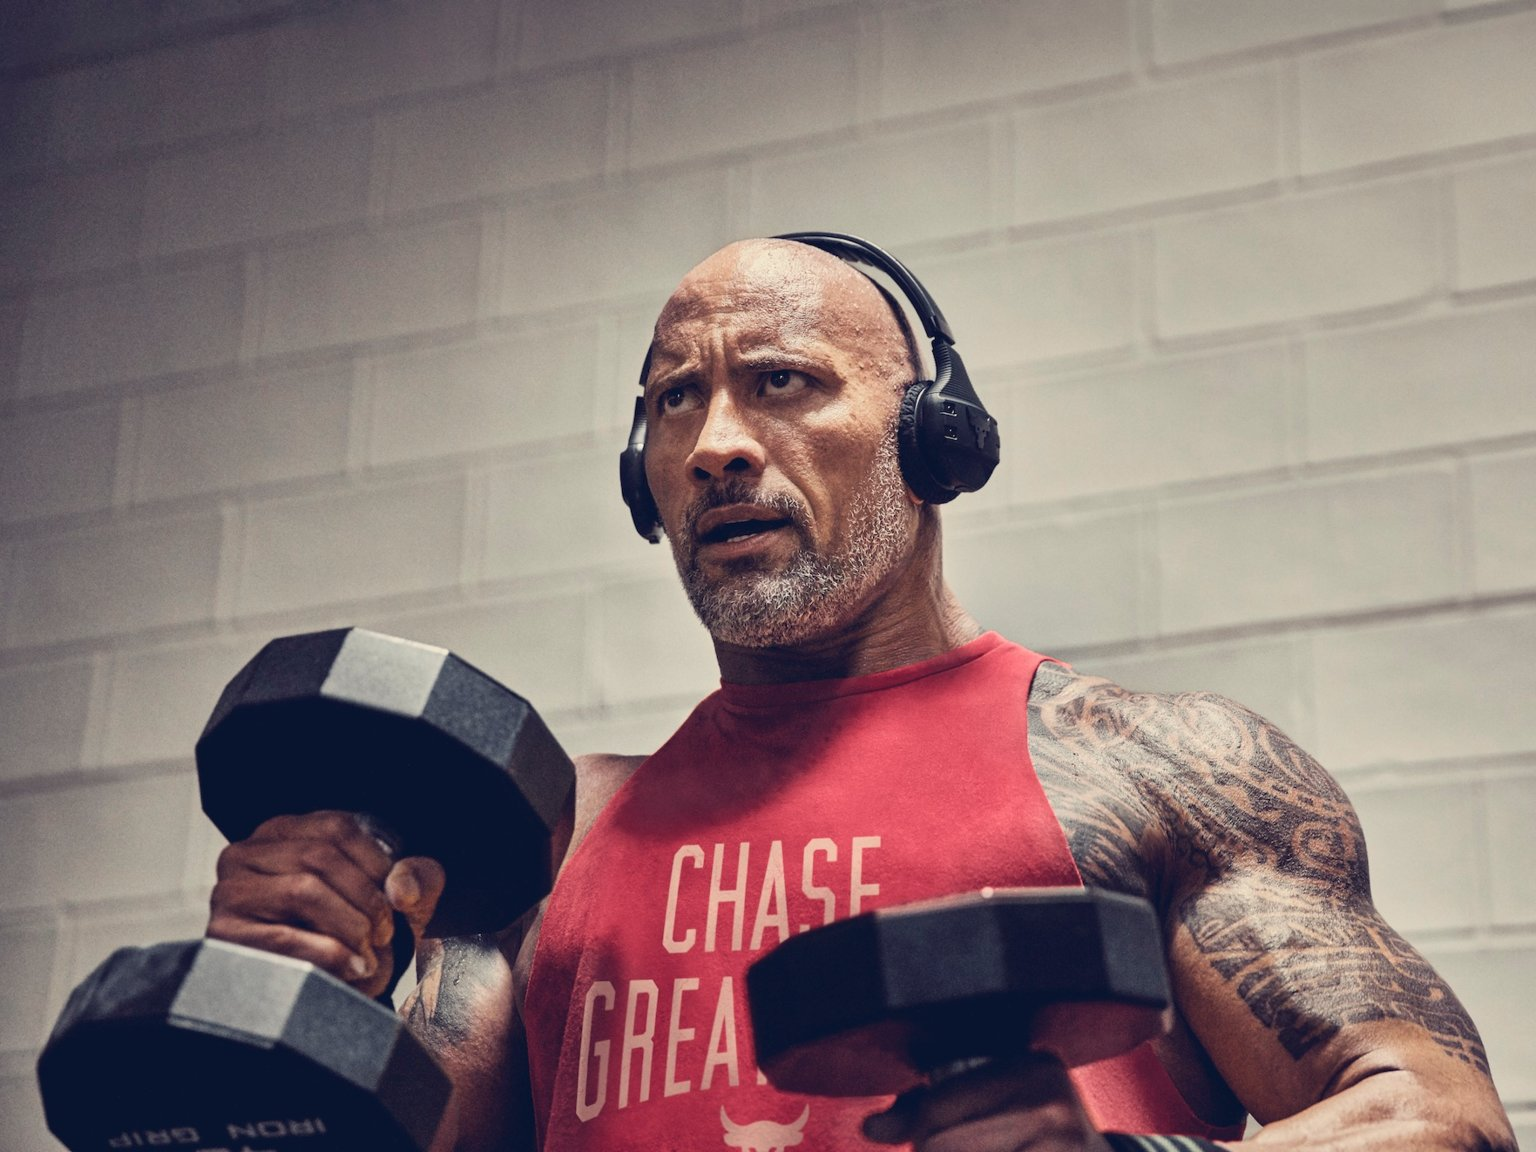 Dwayne Johnson teamed up with Under Armour and JBL to make wireless headphones that won't fall off when you work out  here's what they're like